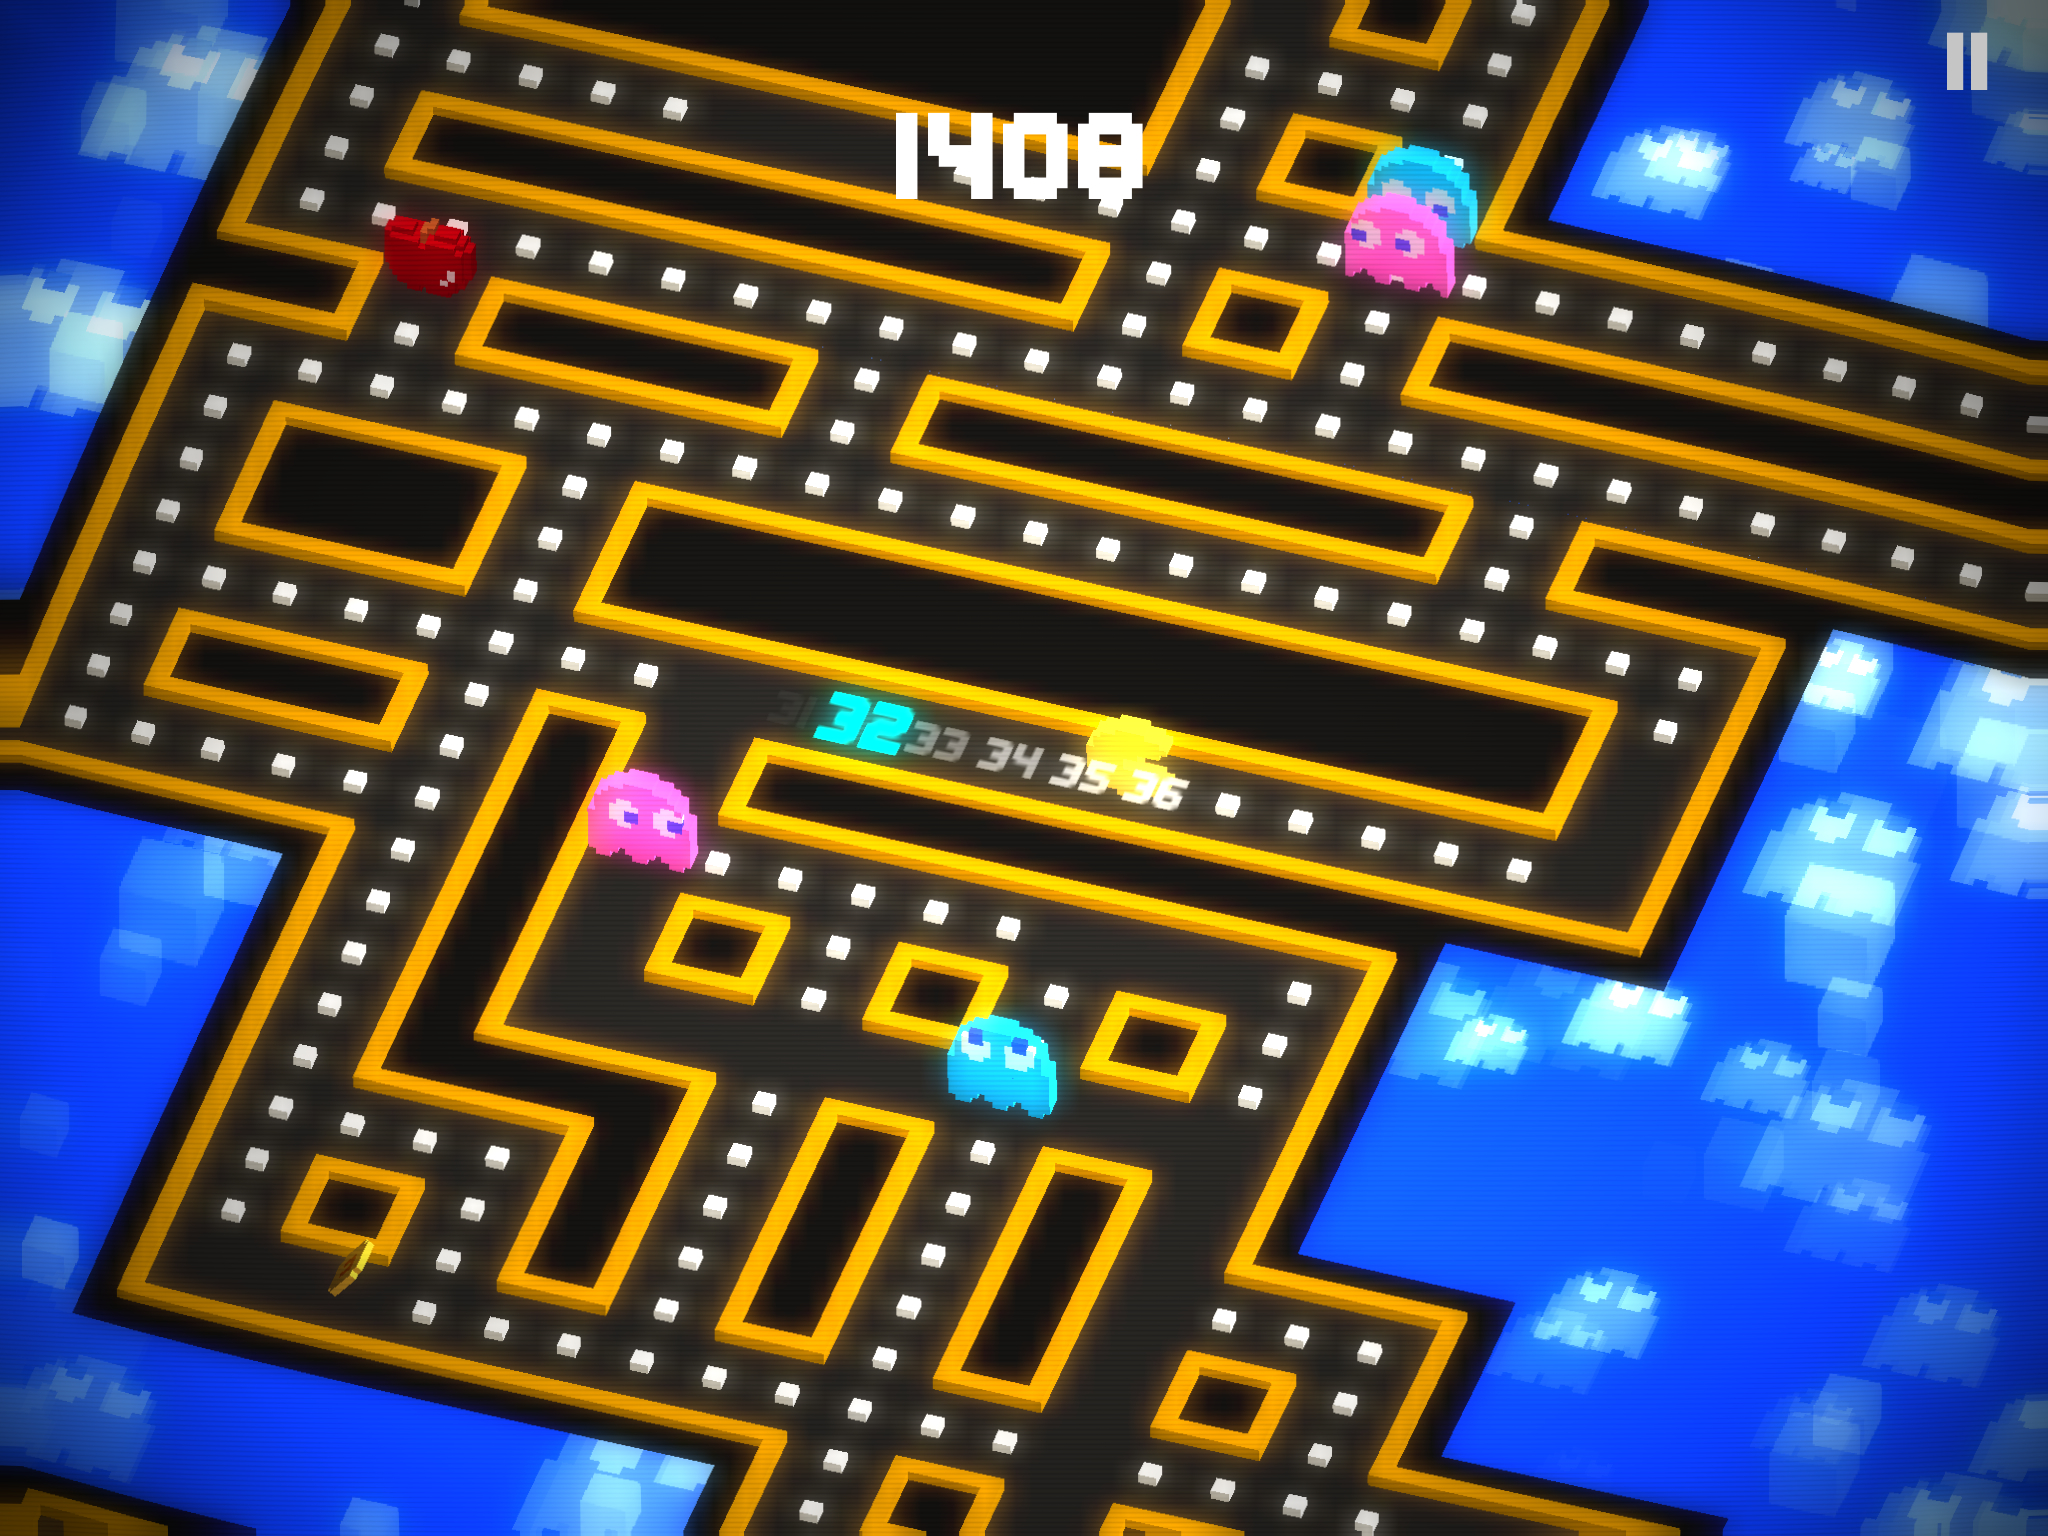 Pac-Man 256 - Endlessly replayable dot-munching